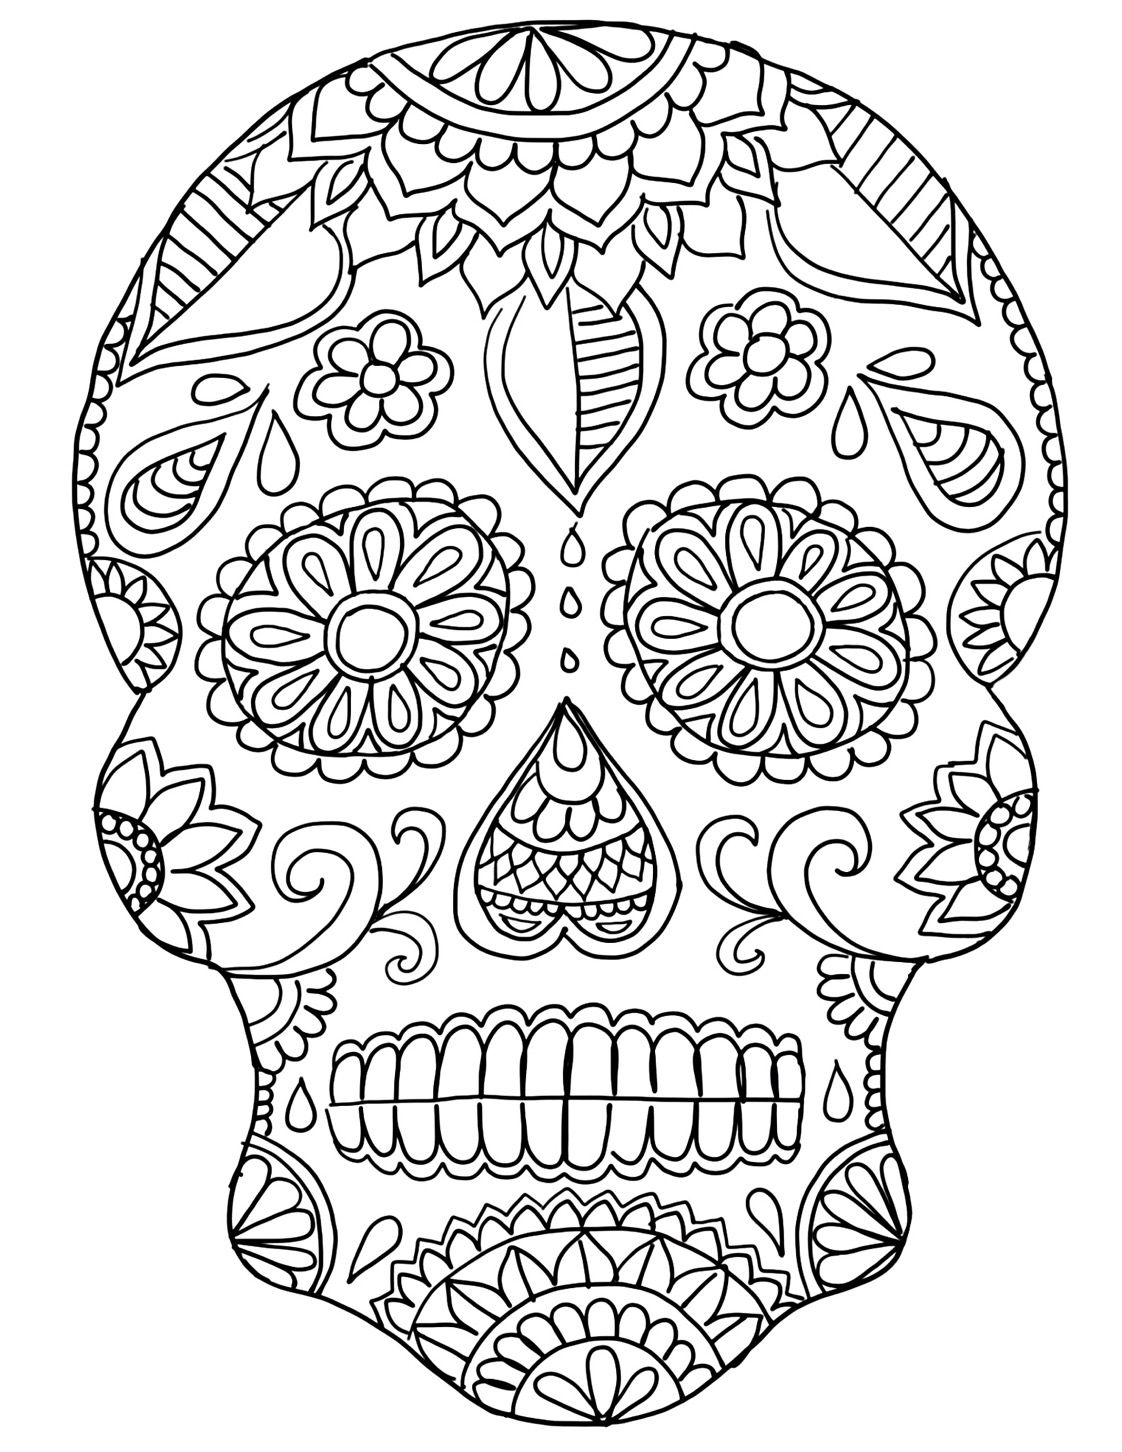 Uncategorized Day Of The Dead Coloring cdn2 bigcommerce com n zfvgw8 0mm7mv5 product images uploaded skull coloring page